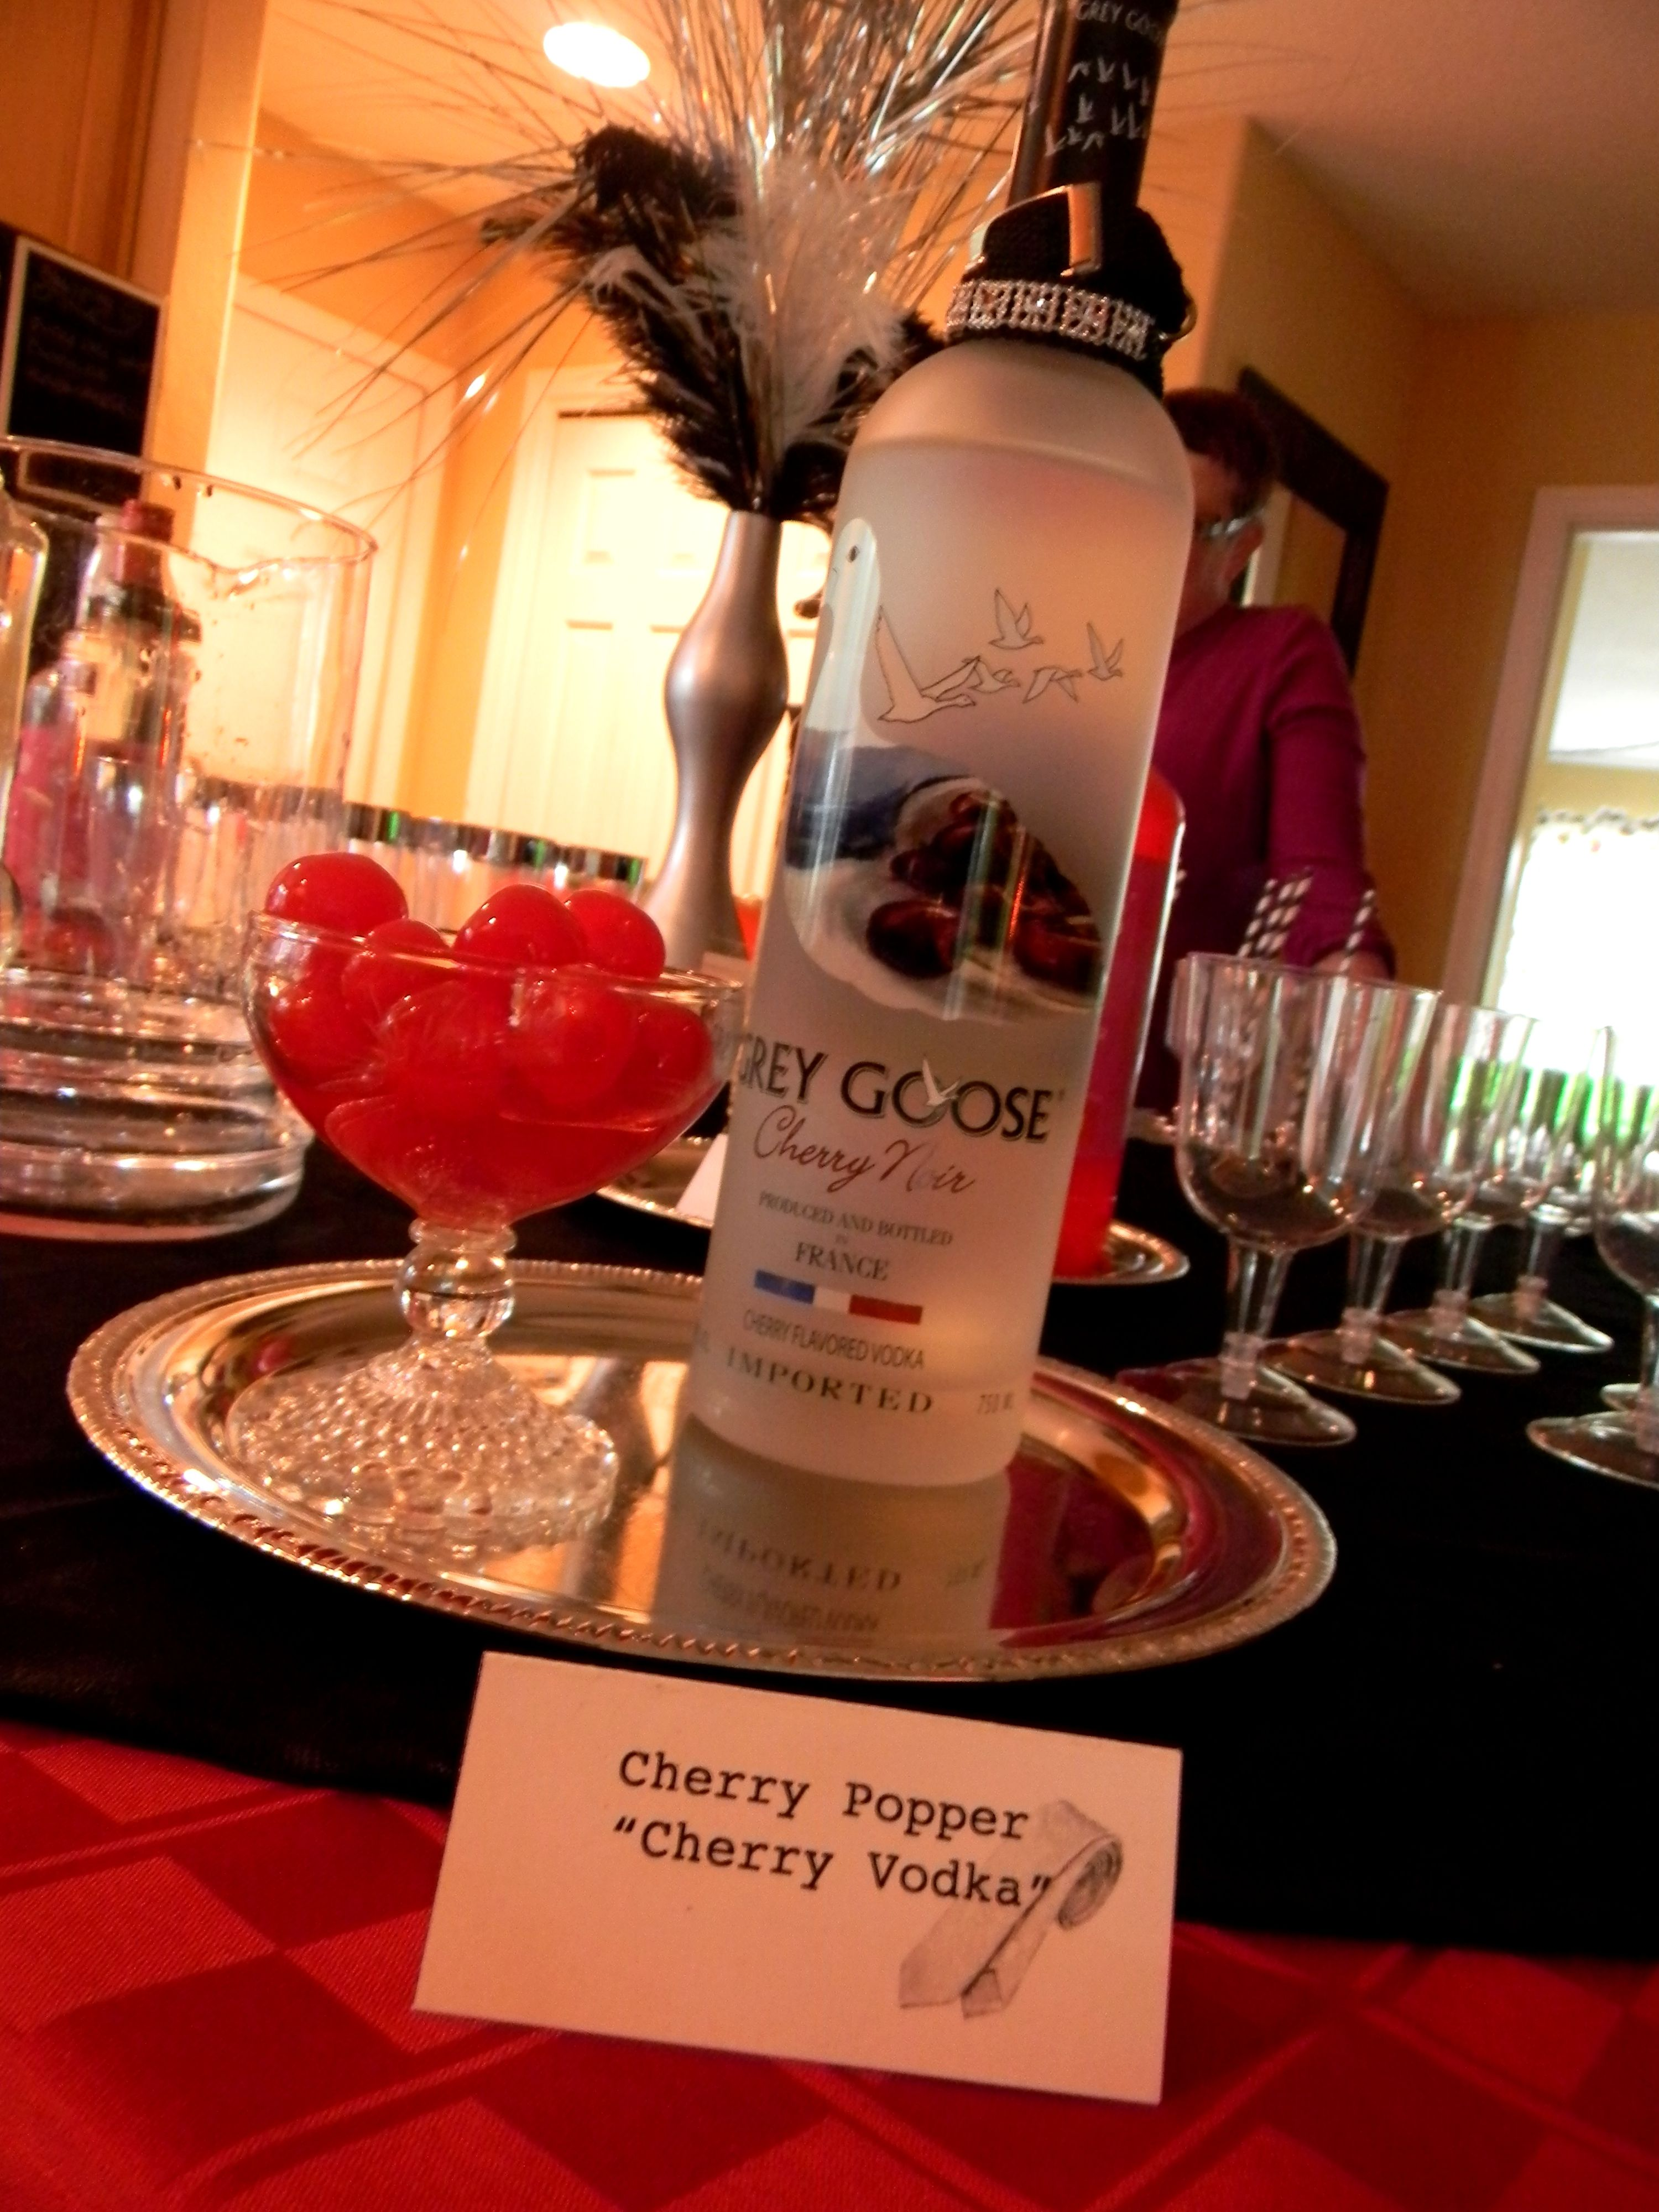 Fifty Shades Of Grey Party Drink Http Bellacparties Blogspot Com 2014 07 Fifty Shades Of Fifty Shades Party Ideas Awesome Bachelorette Party 50 Shades Party